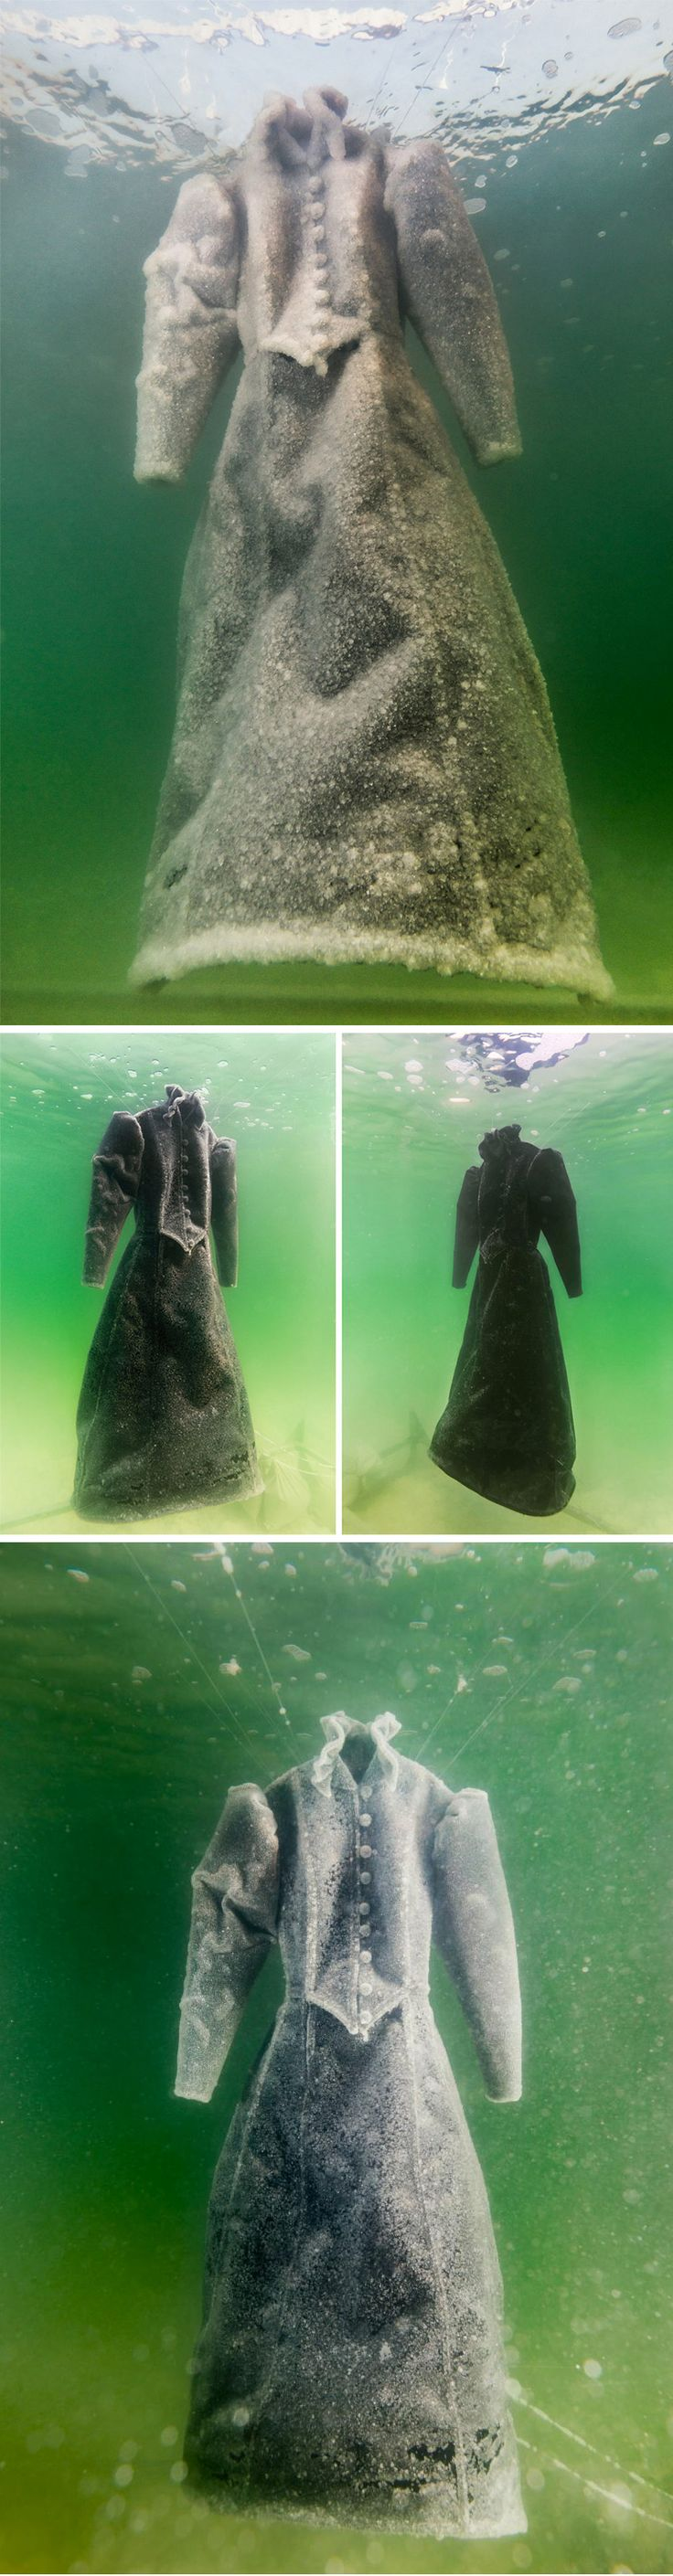 A 19th Century Dress Submerged in the Dead Sea Becomes Gradually Crystallized…